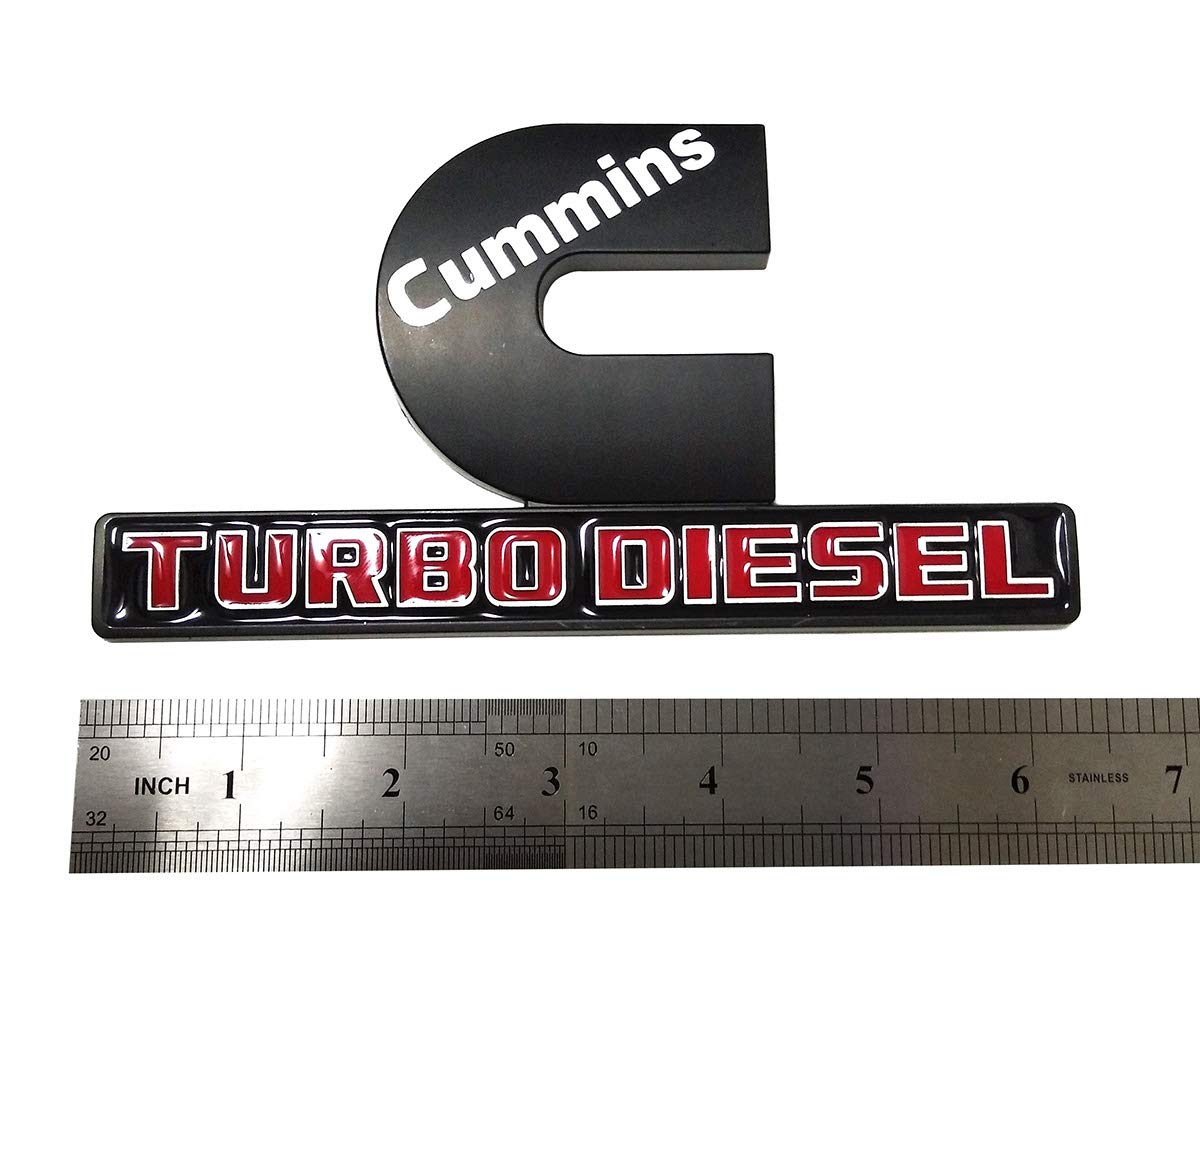 Chrome red Yuauto Cummins Turbo Diesel Car Emblems 3D Decal Badges Replacement for Dodge Ram 2500 3500 Nameplate Emblem Mopar